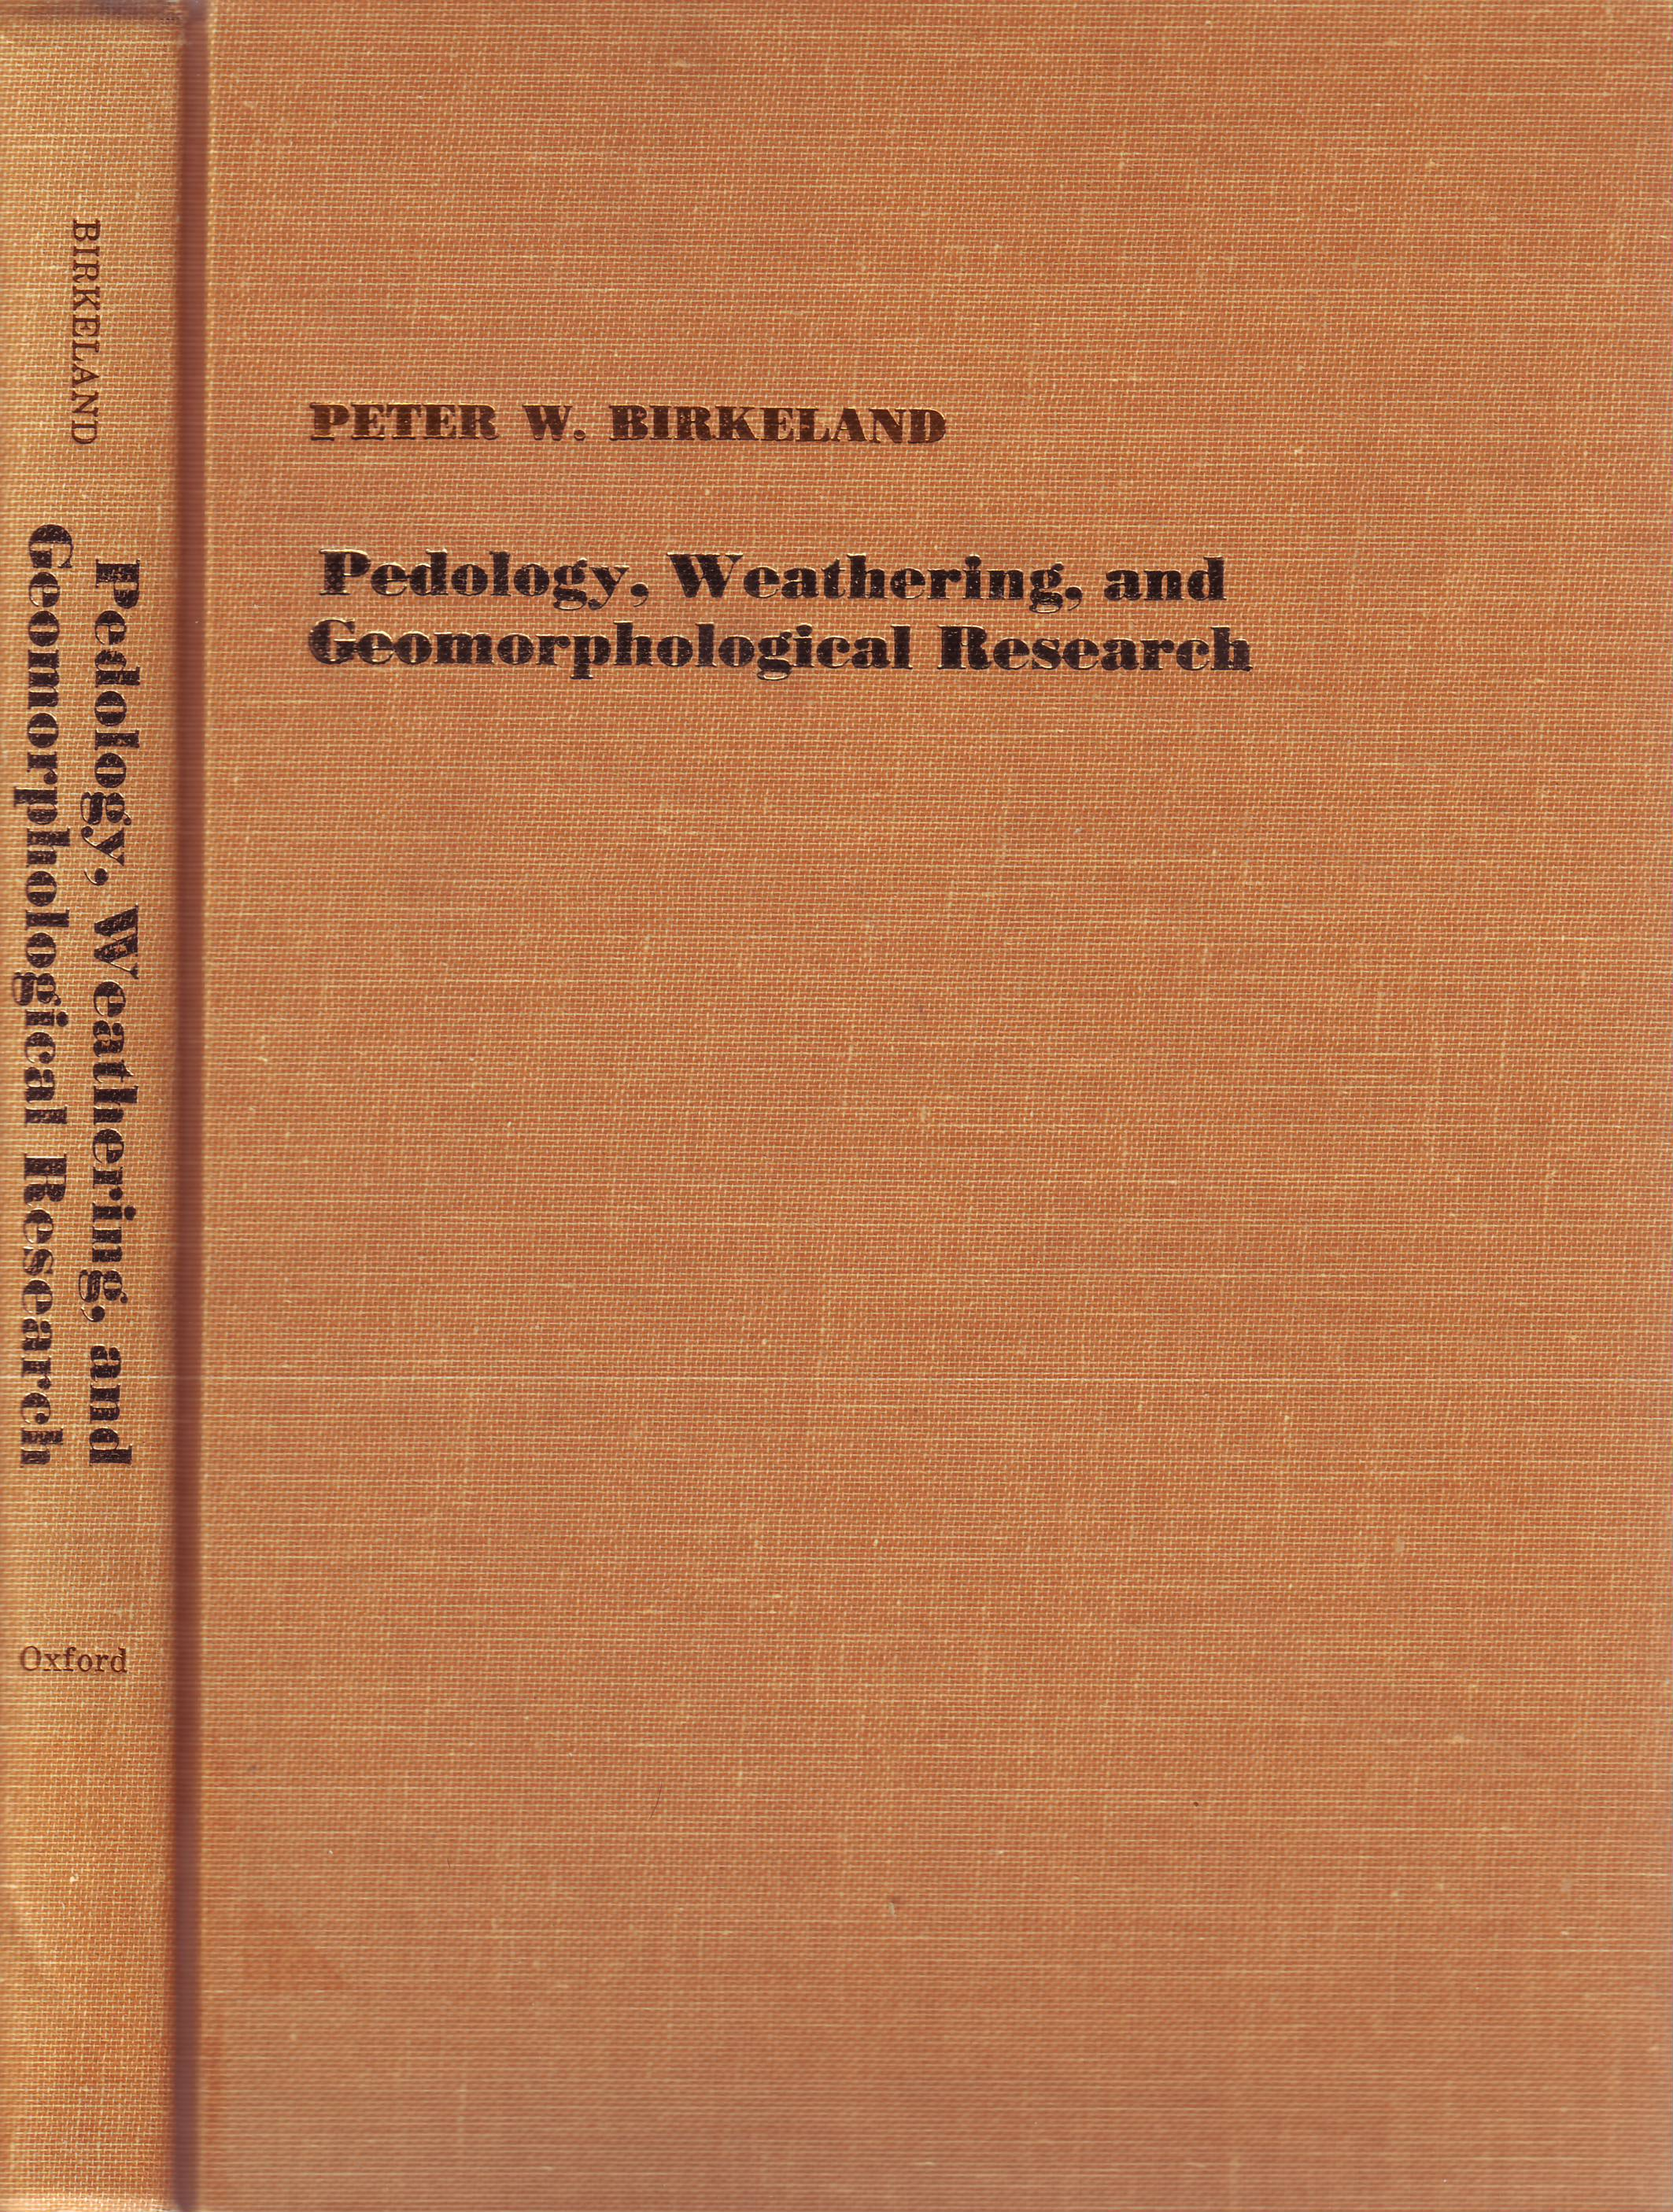 Pedology, Weathering and Geomorphological Research